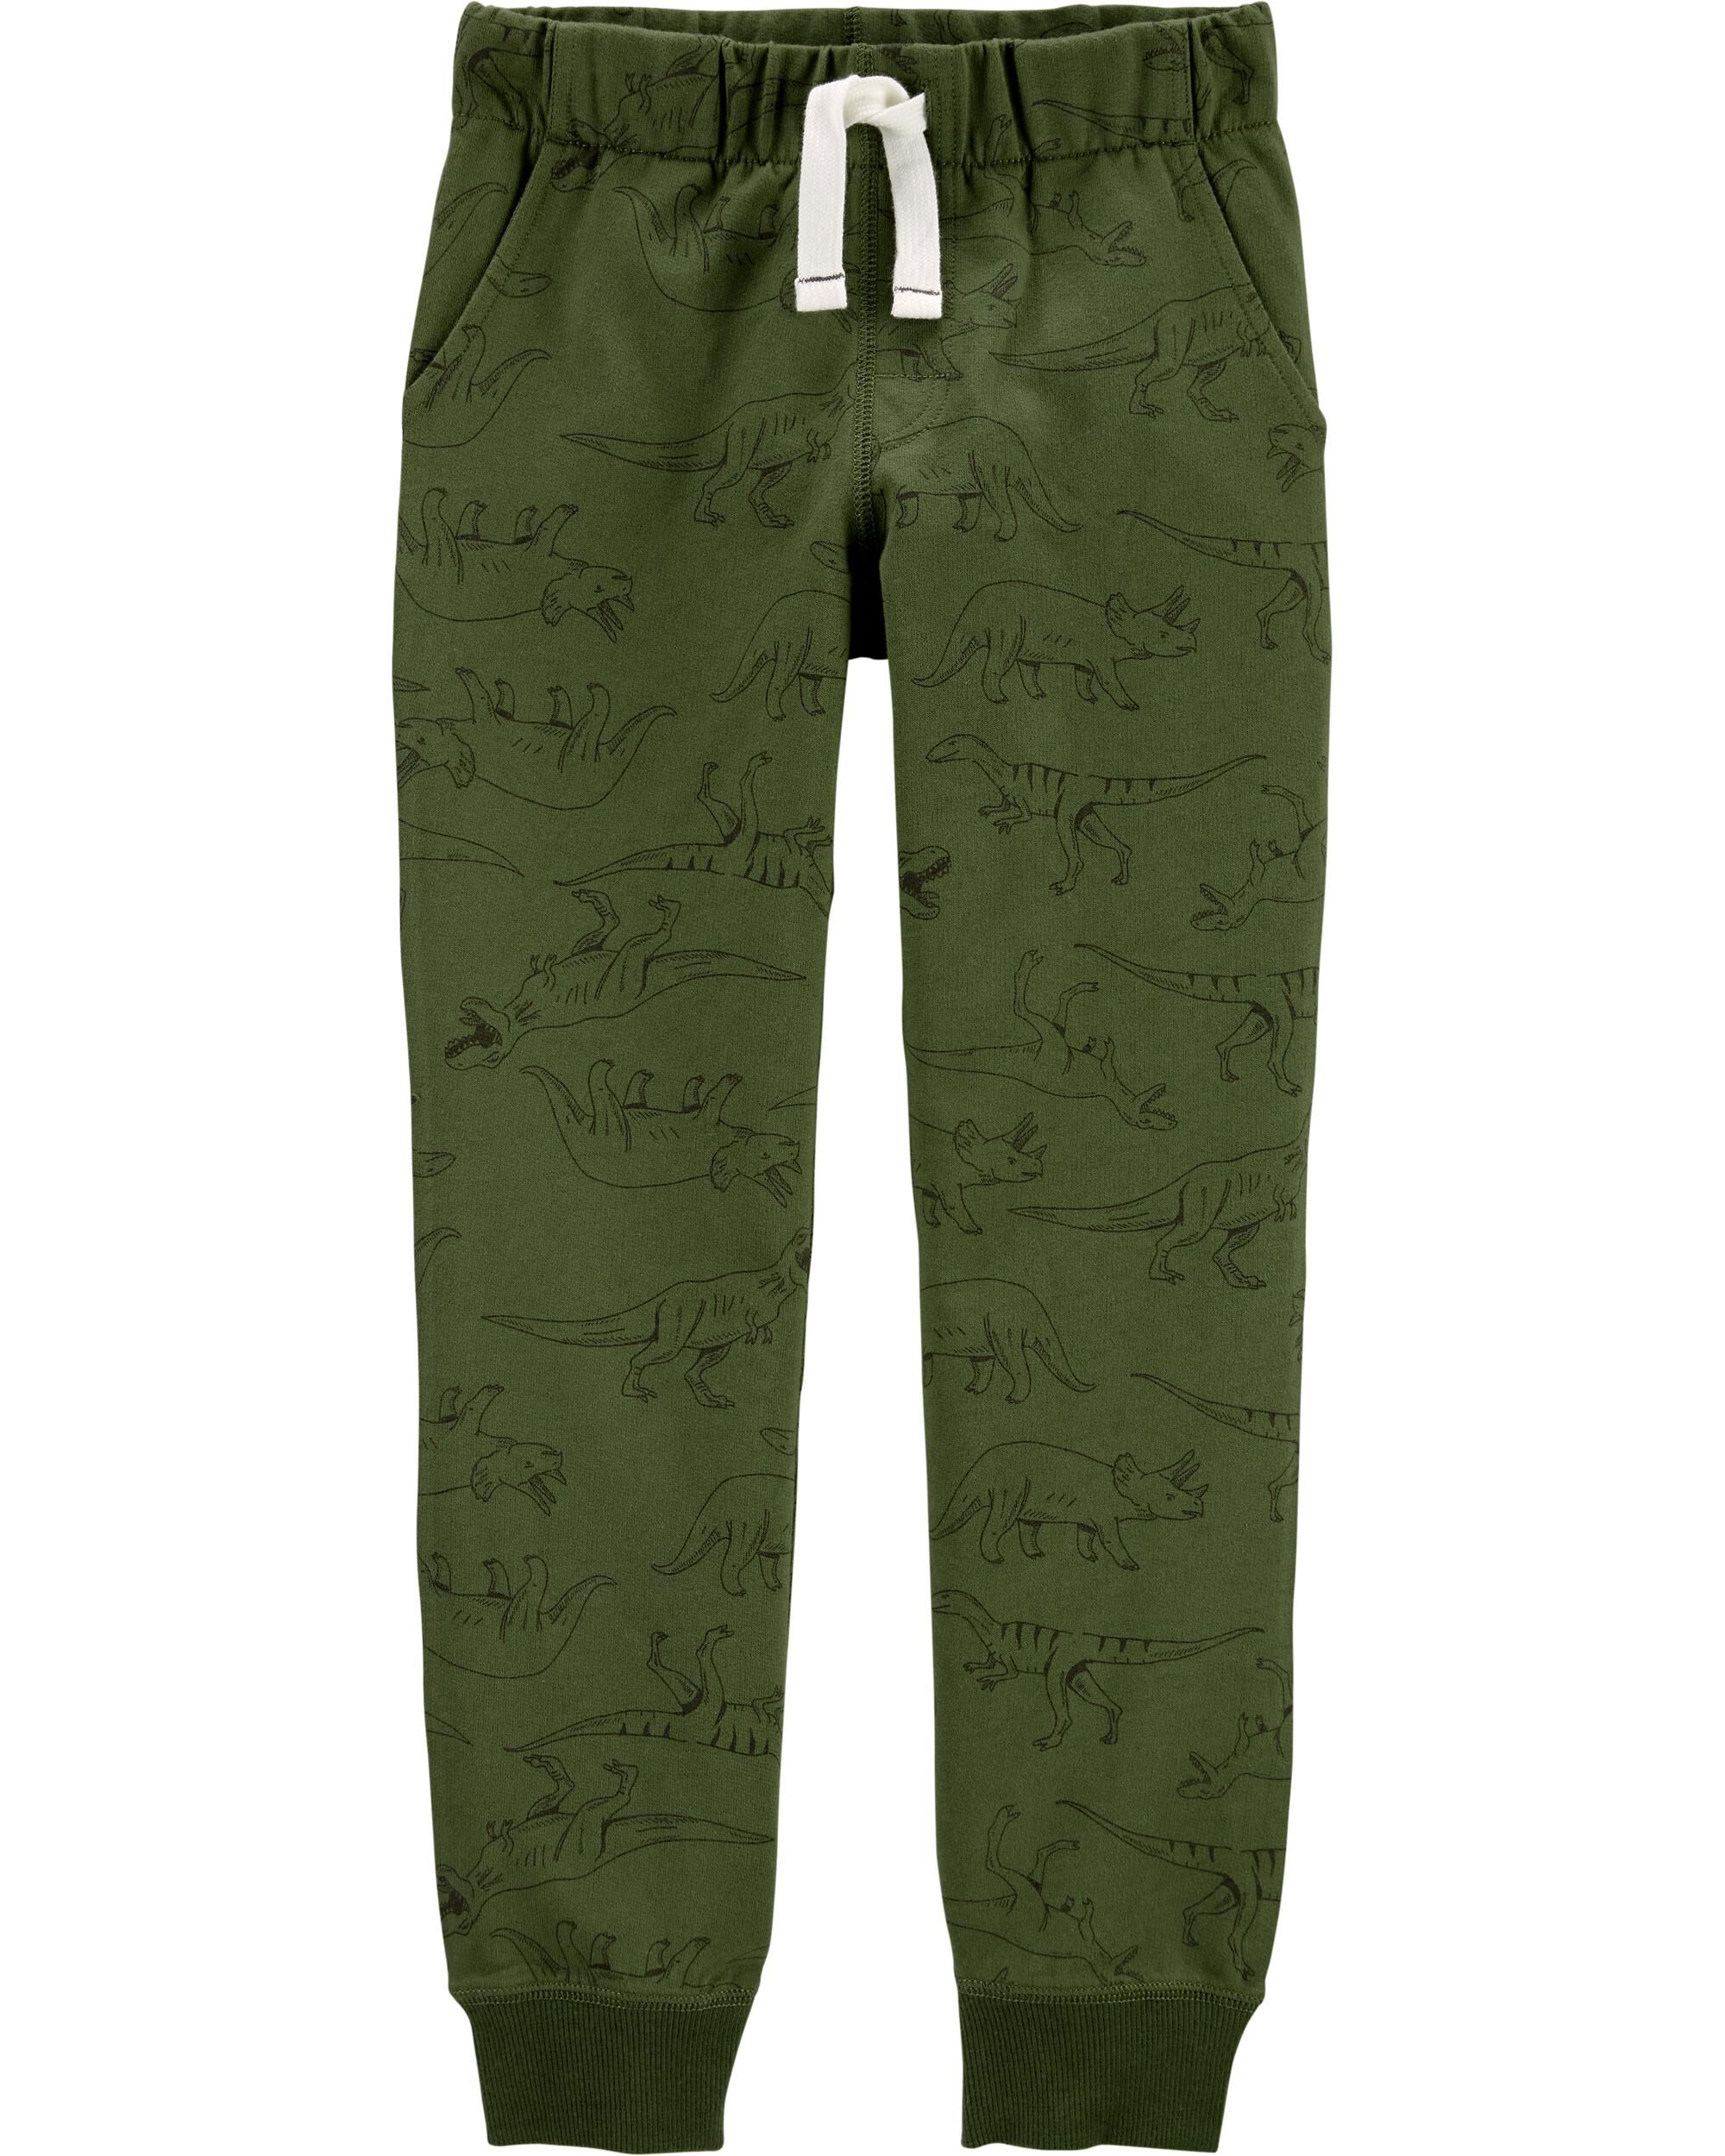 *DOORBUSTER* Pull-On French Terry Joggers